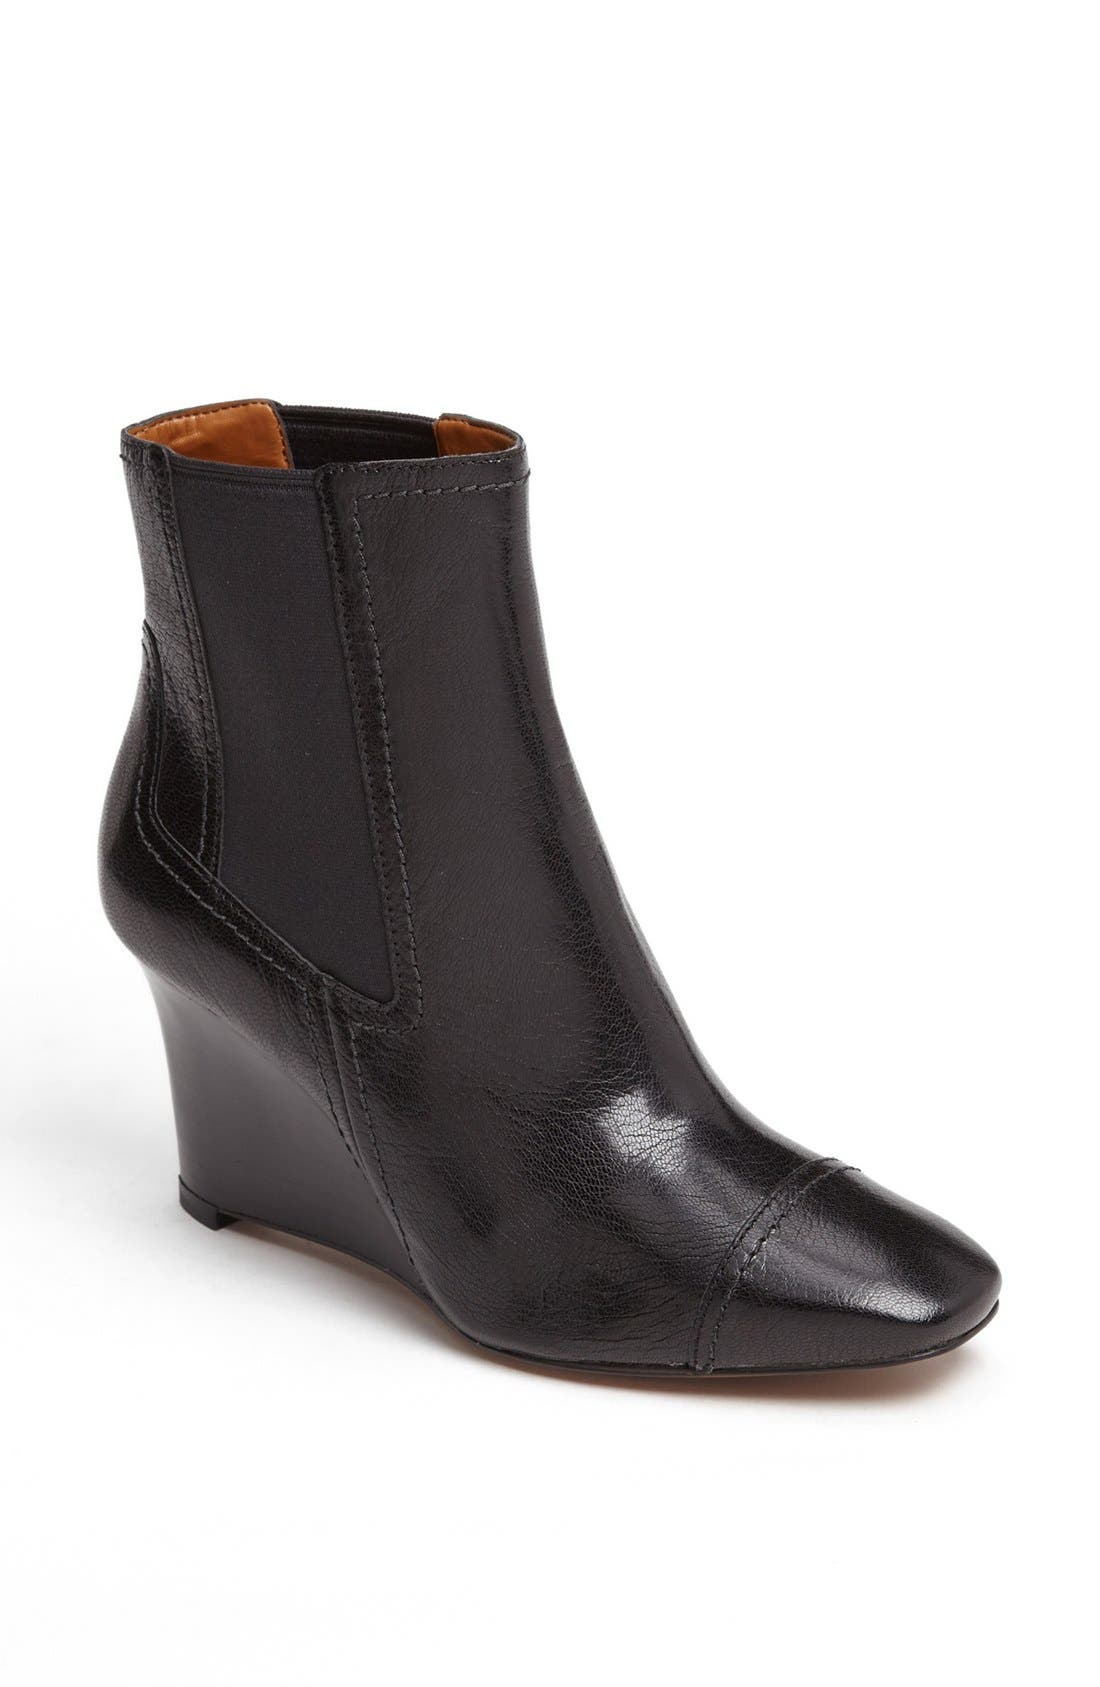 Main Image - Nine West 'Xepted' Wedge Bootie